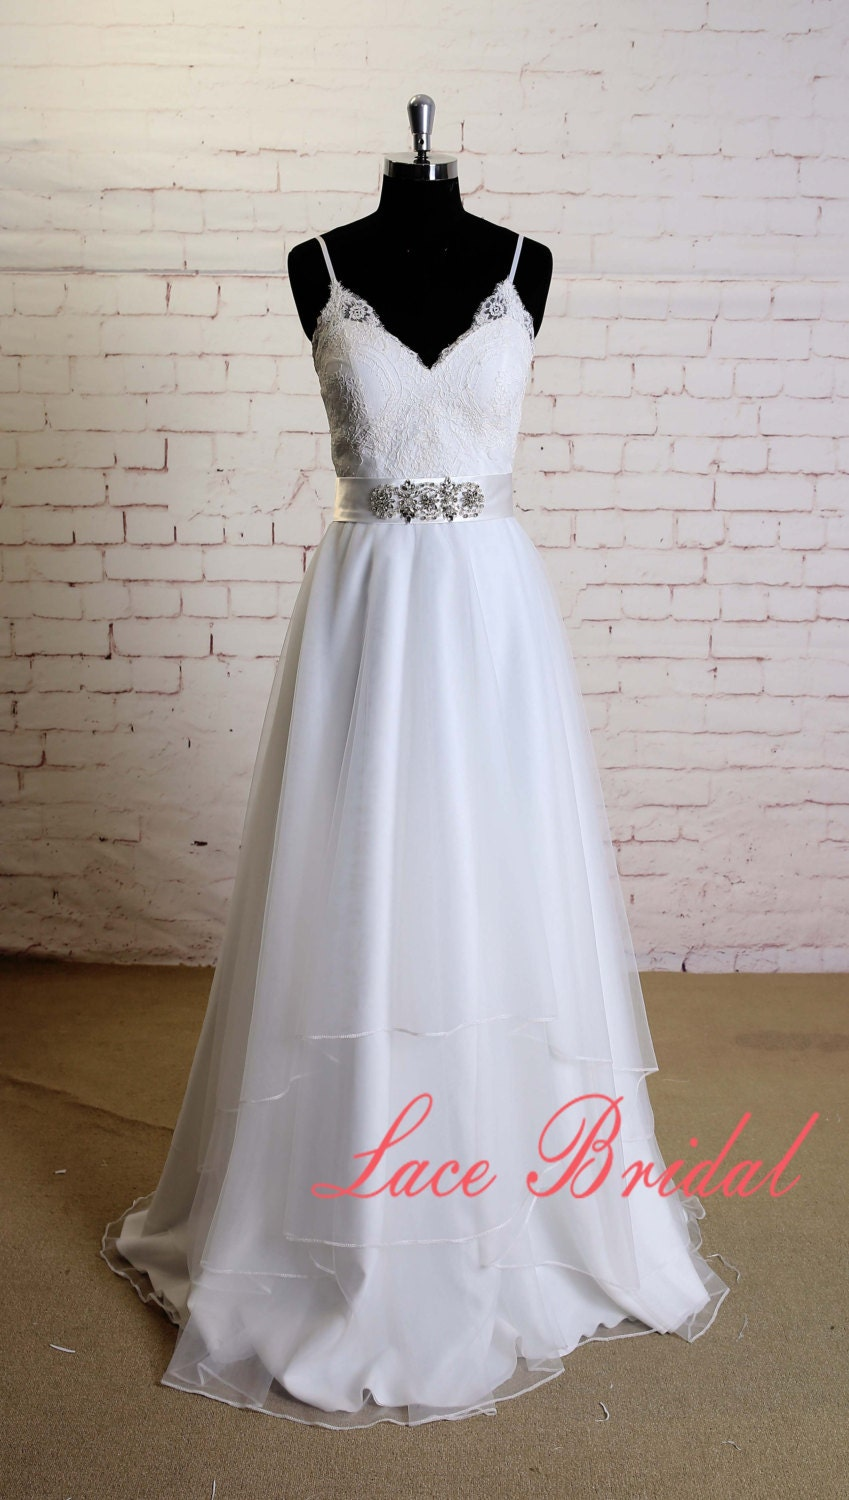 Layered Tulle Wedding Dresses : Soft layered tulle skirt wedding dress with spaghetti straps